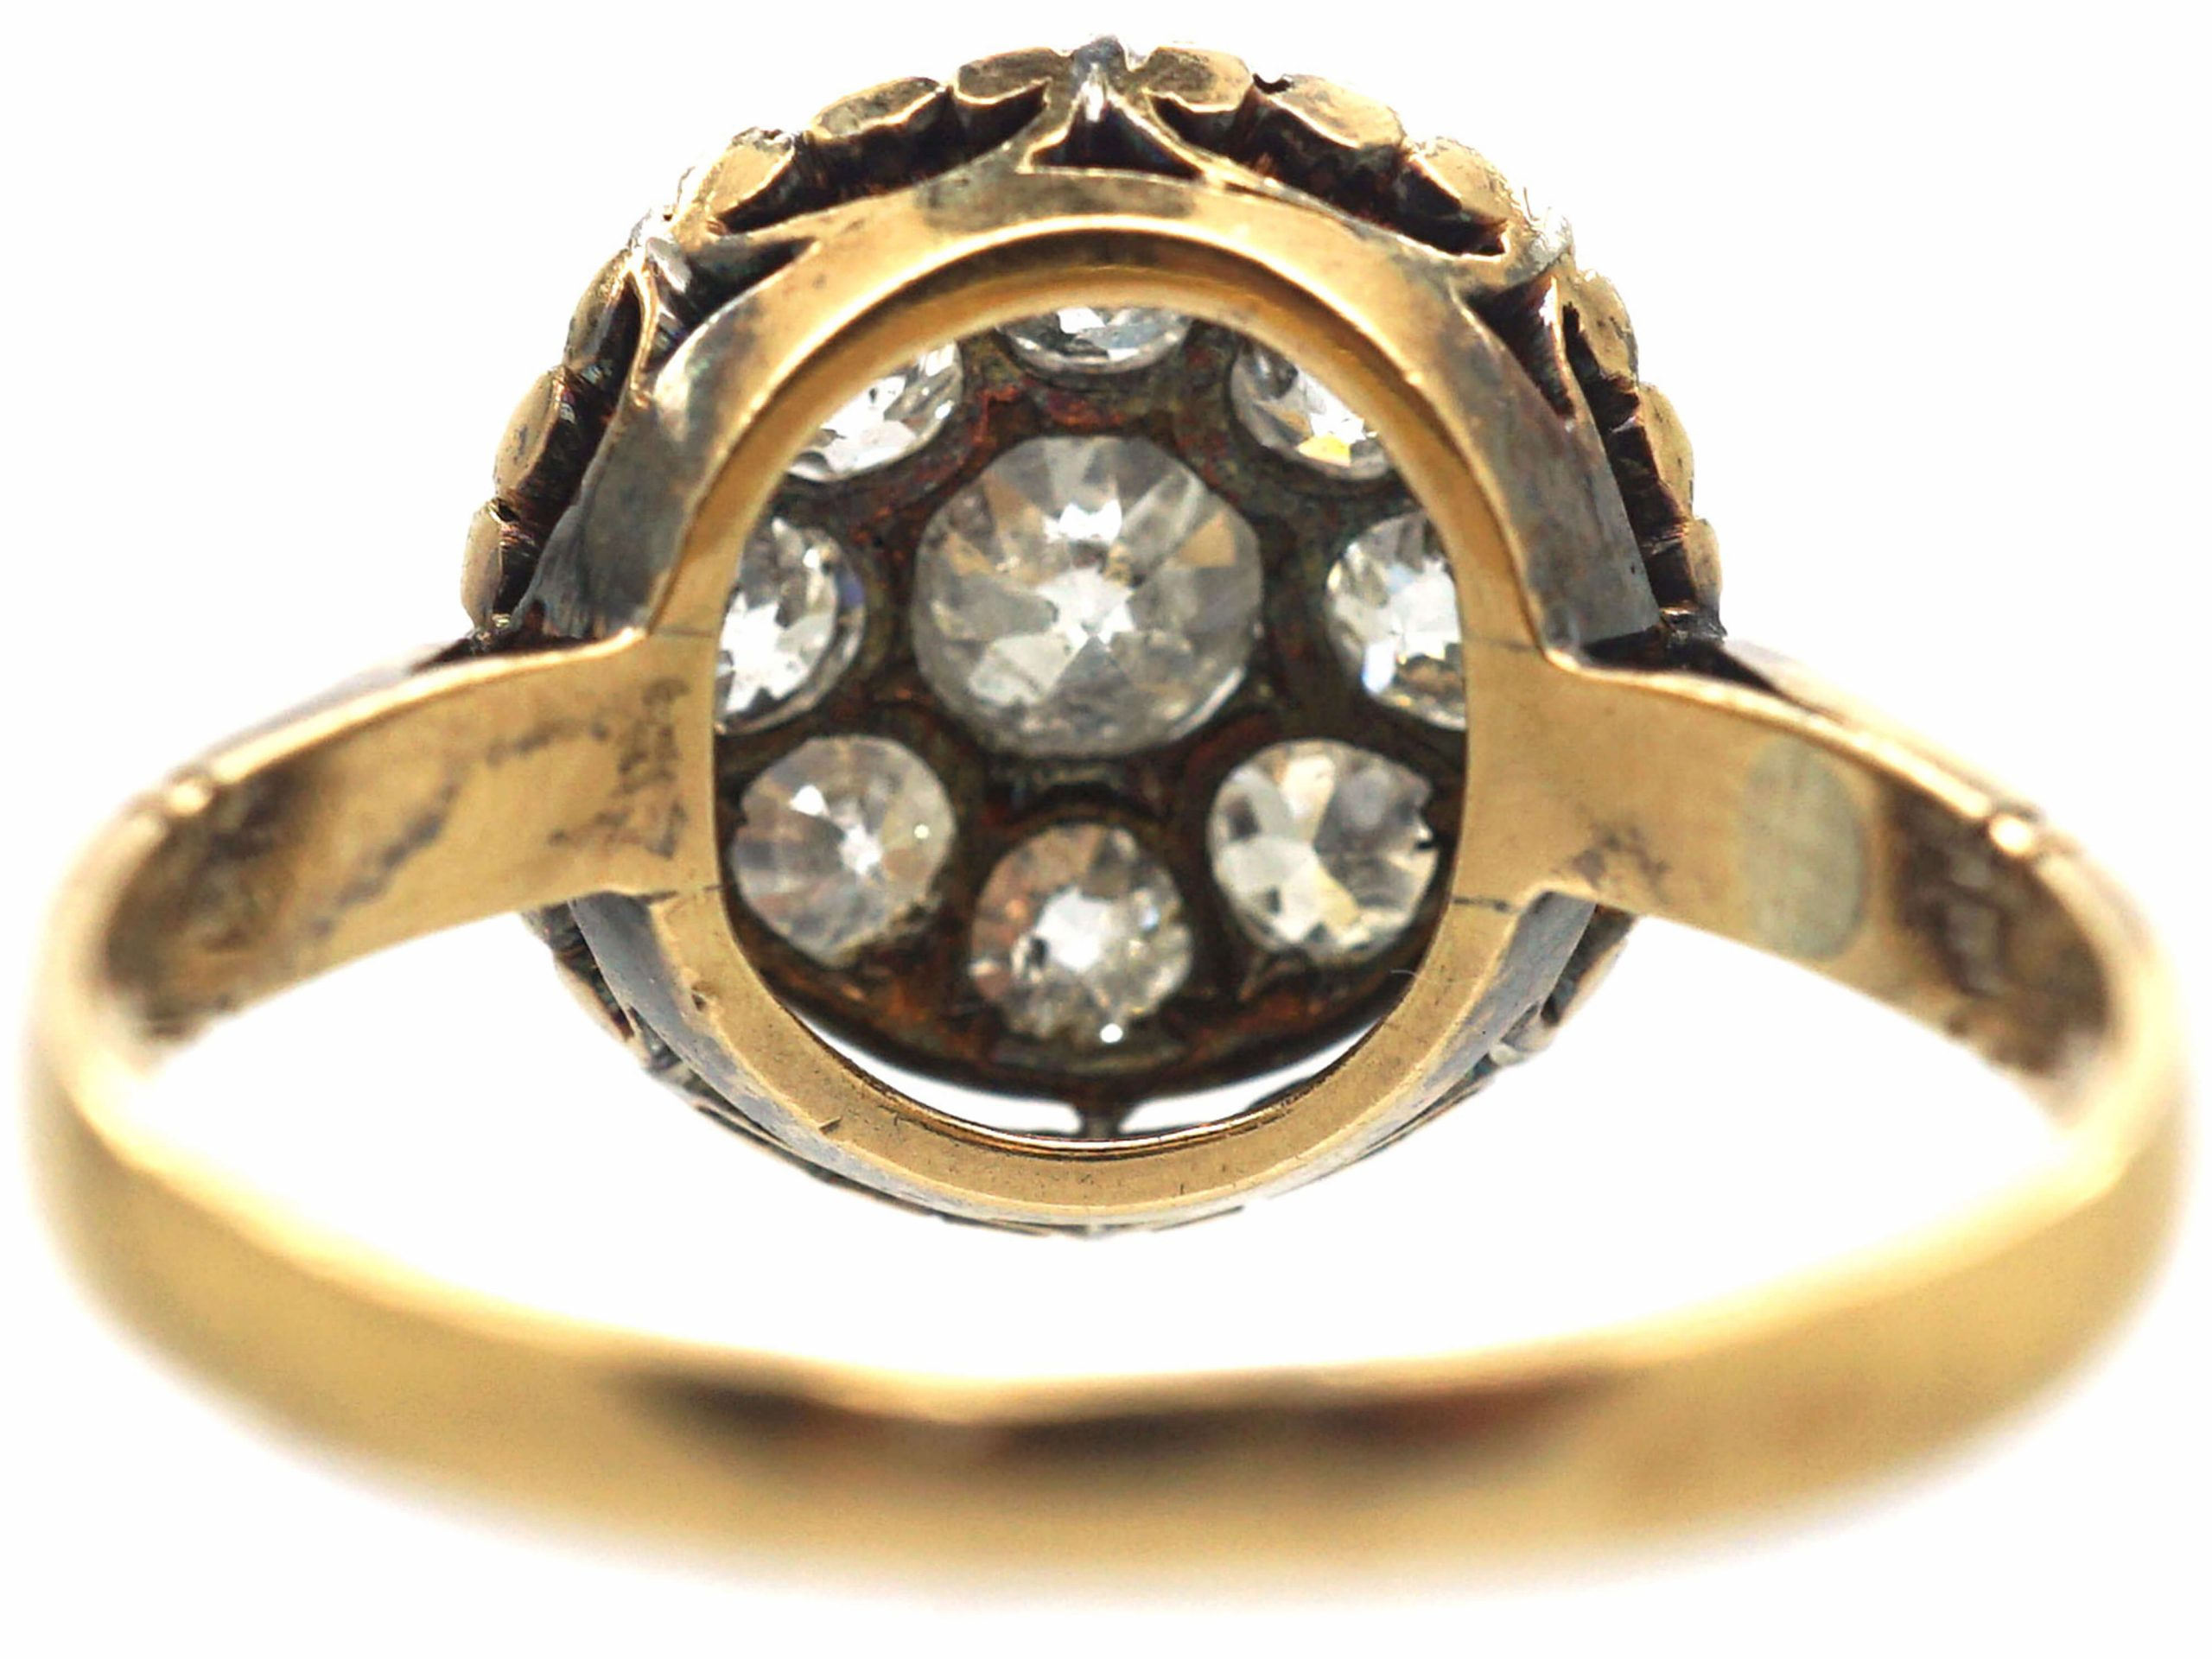 Art Deco French 18ct Gold & Platinum, Diamond Cluster Ring with Pie Crust Border